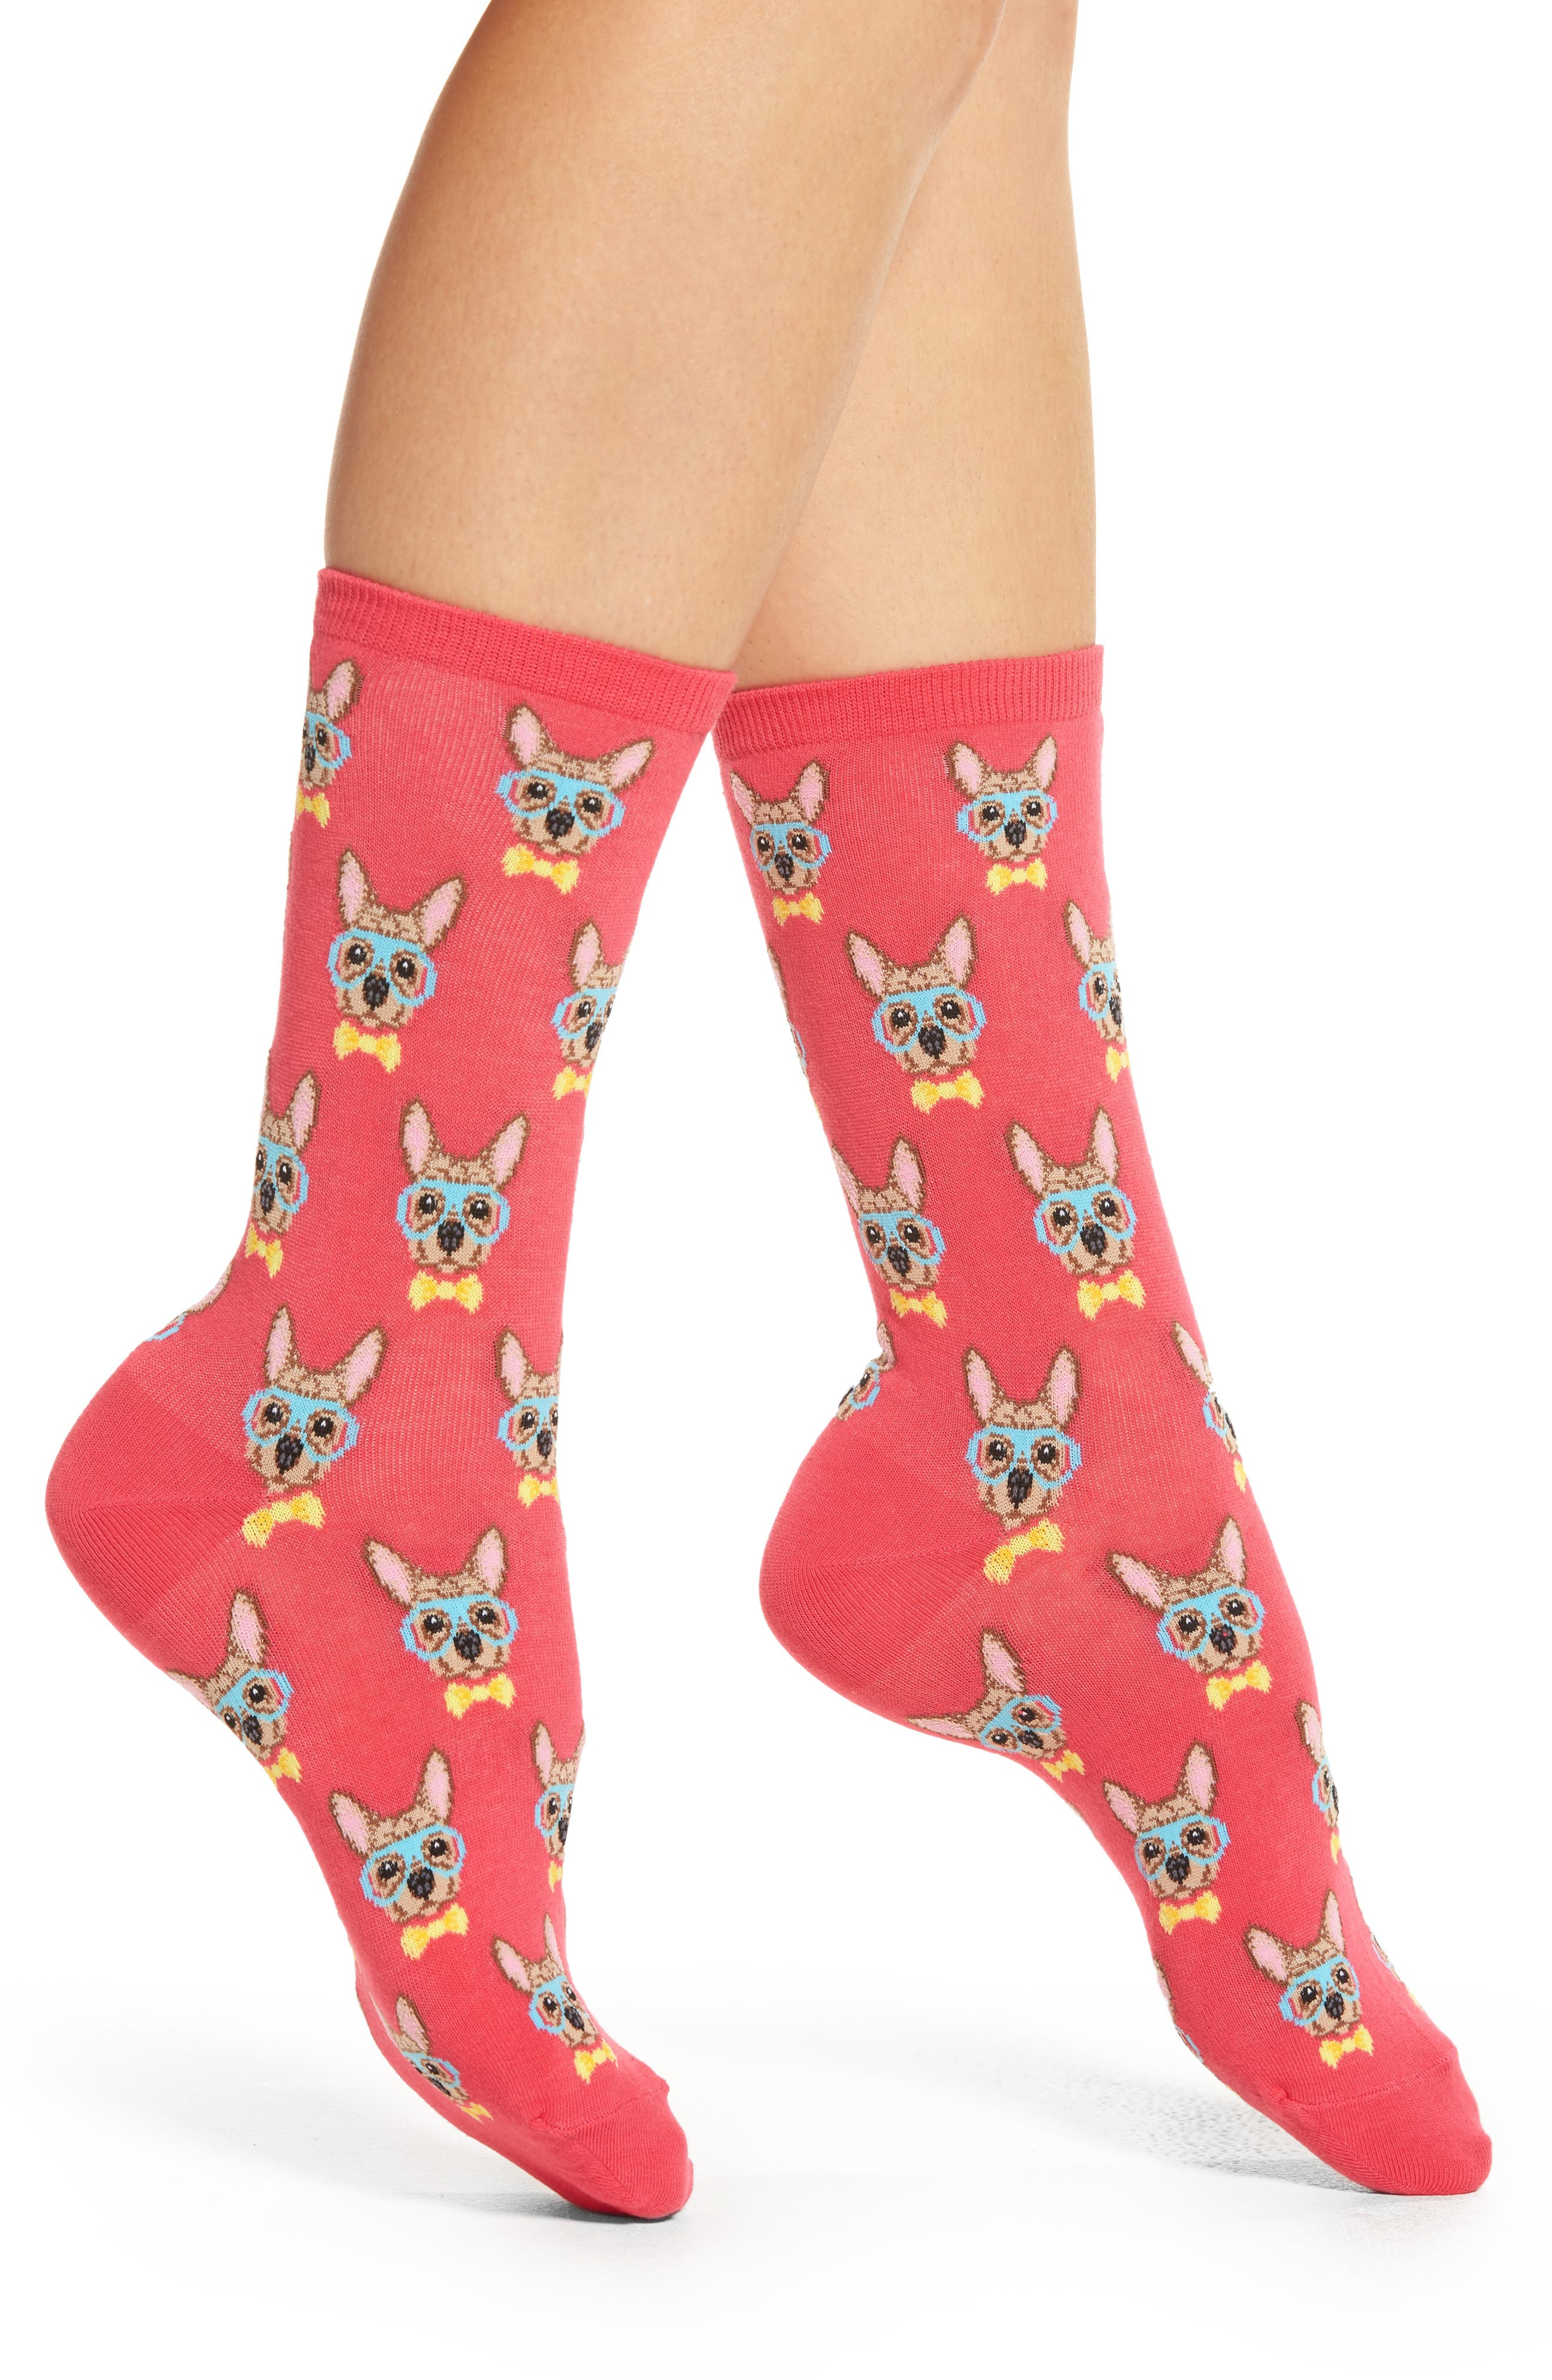 Main Image - Hot Sox Smart Frenchie Crew Socks (3 for $15)